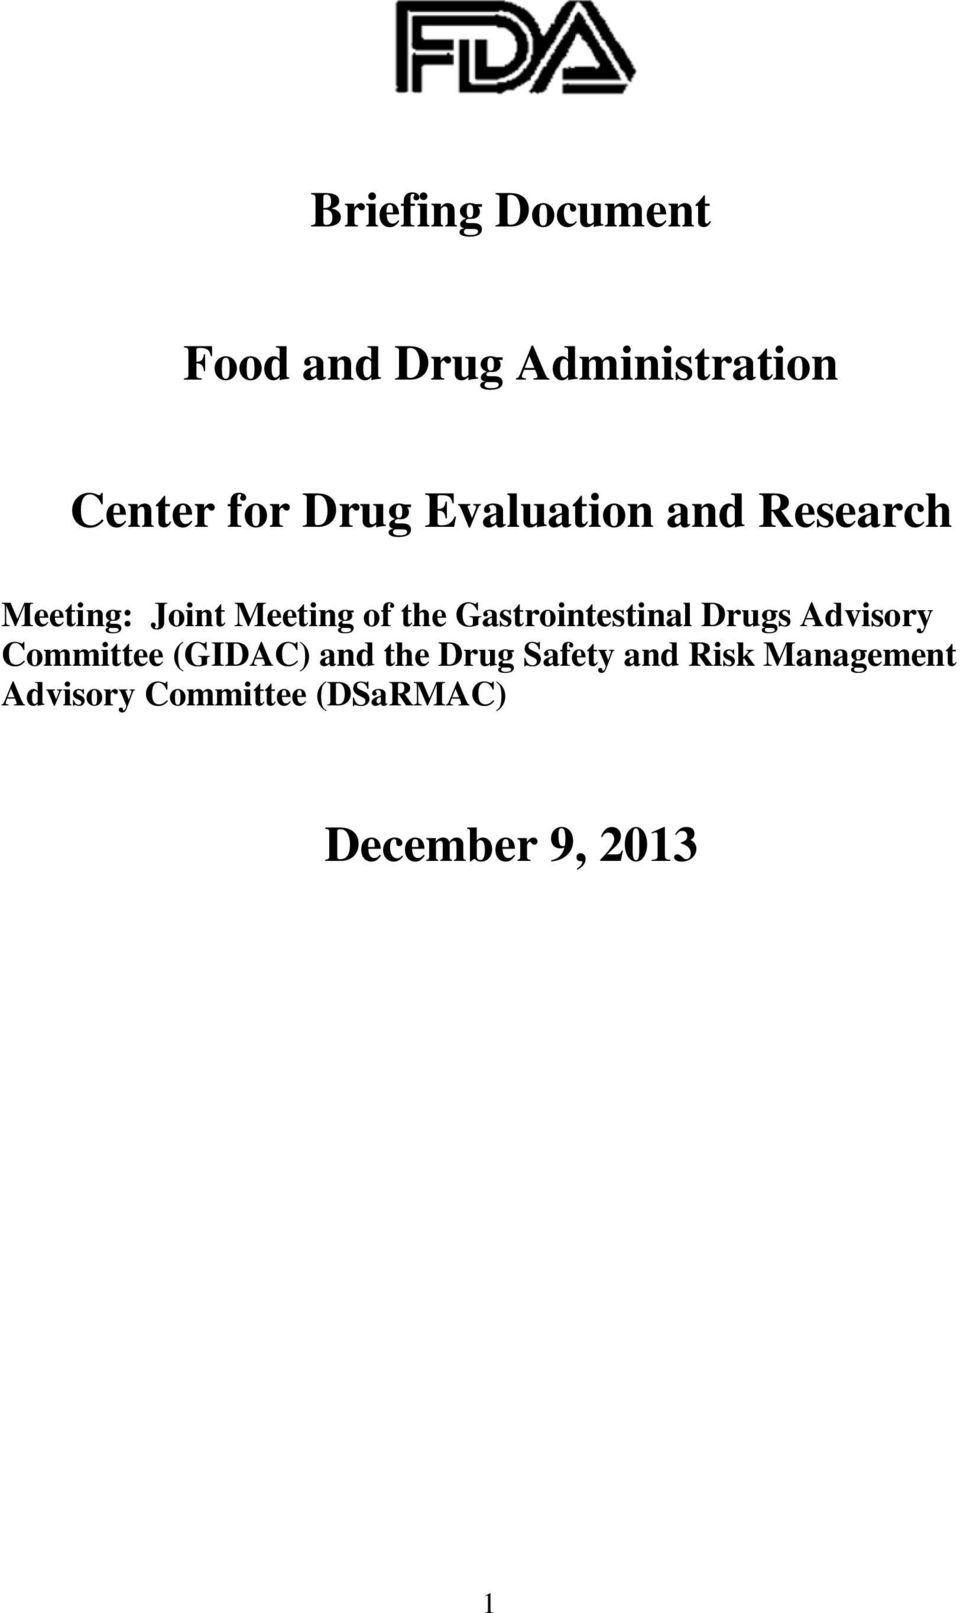 Gastrointestinal Drugs Advisory Committee (GIDAC) and the Drug